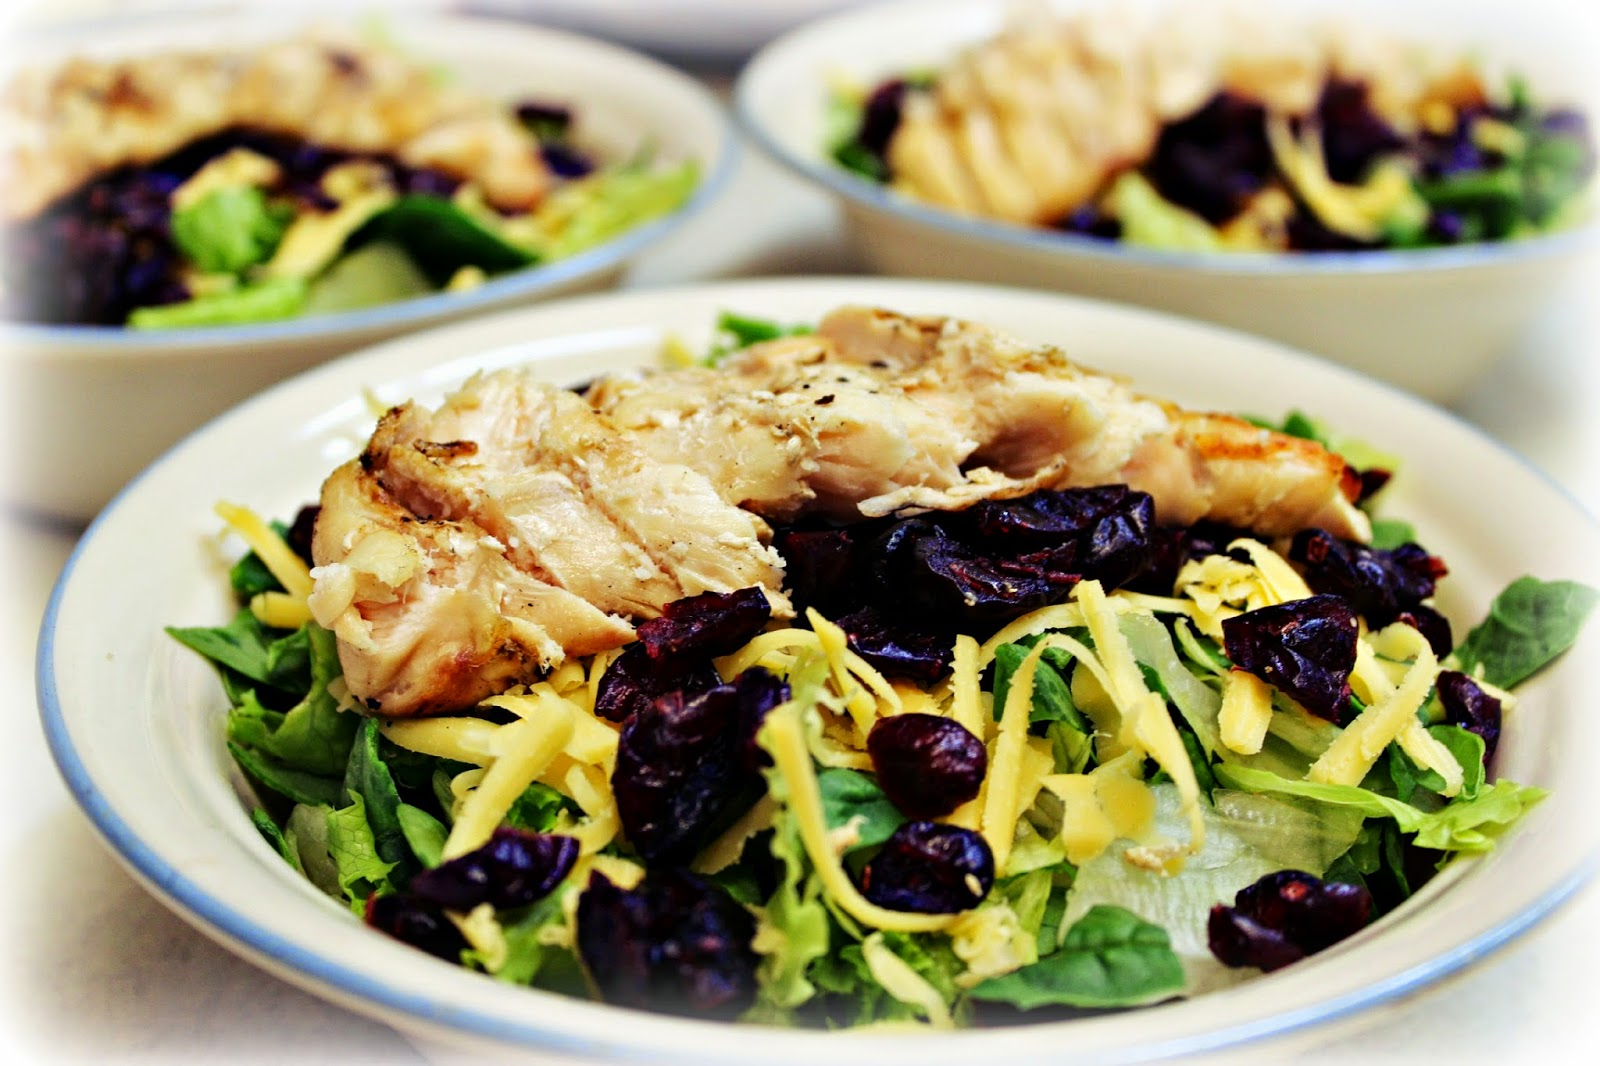 Grilled Chicken & Craisin Salad: AJcrazies by AJK